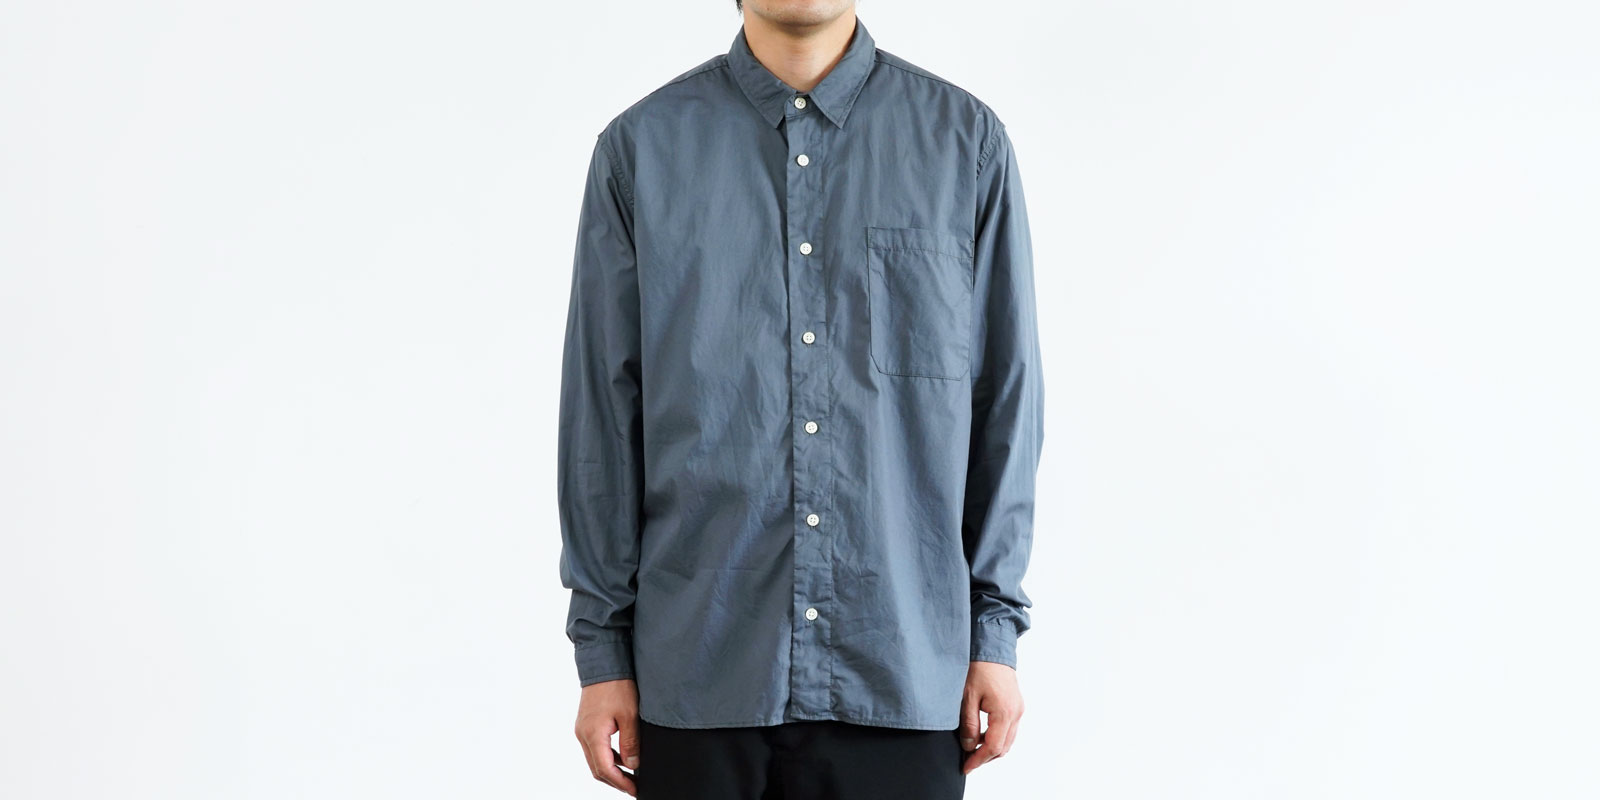 d 205 REGULAR SHIRT・GRAY・M